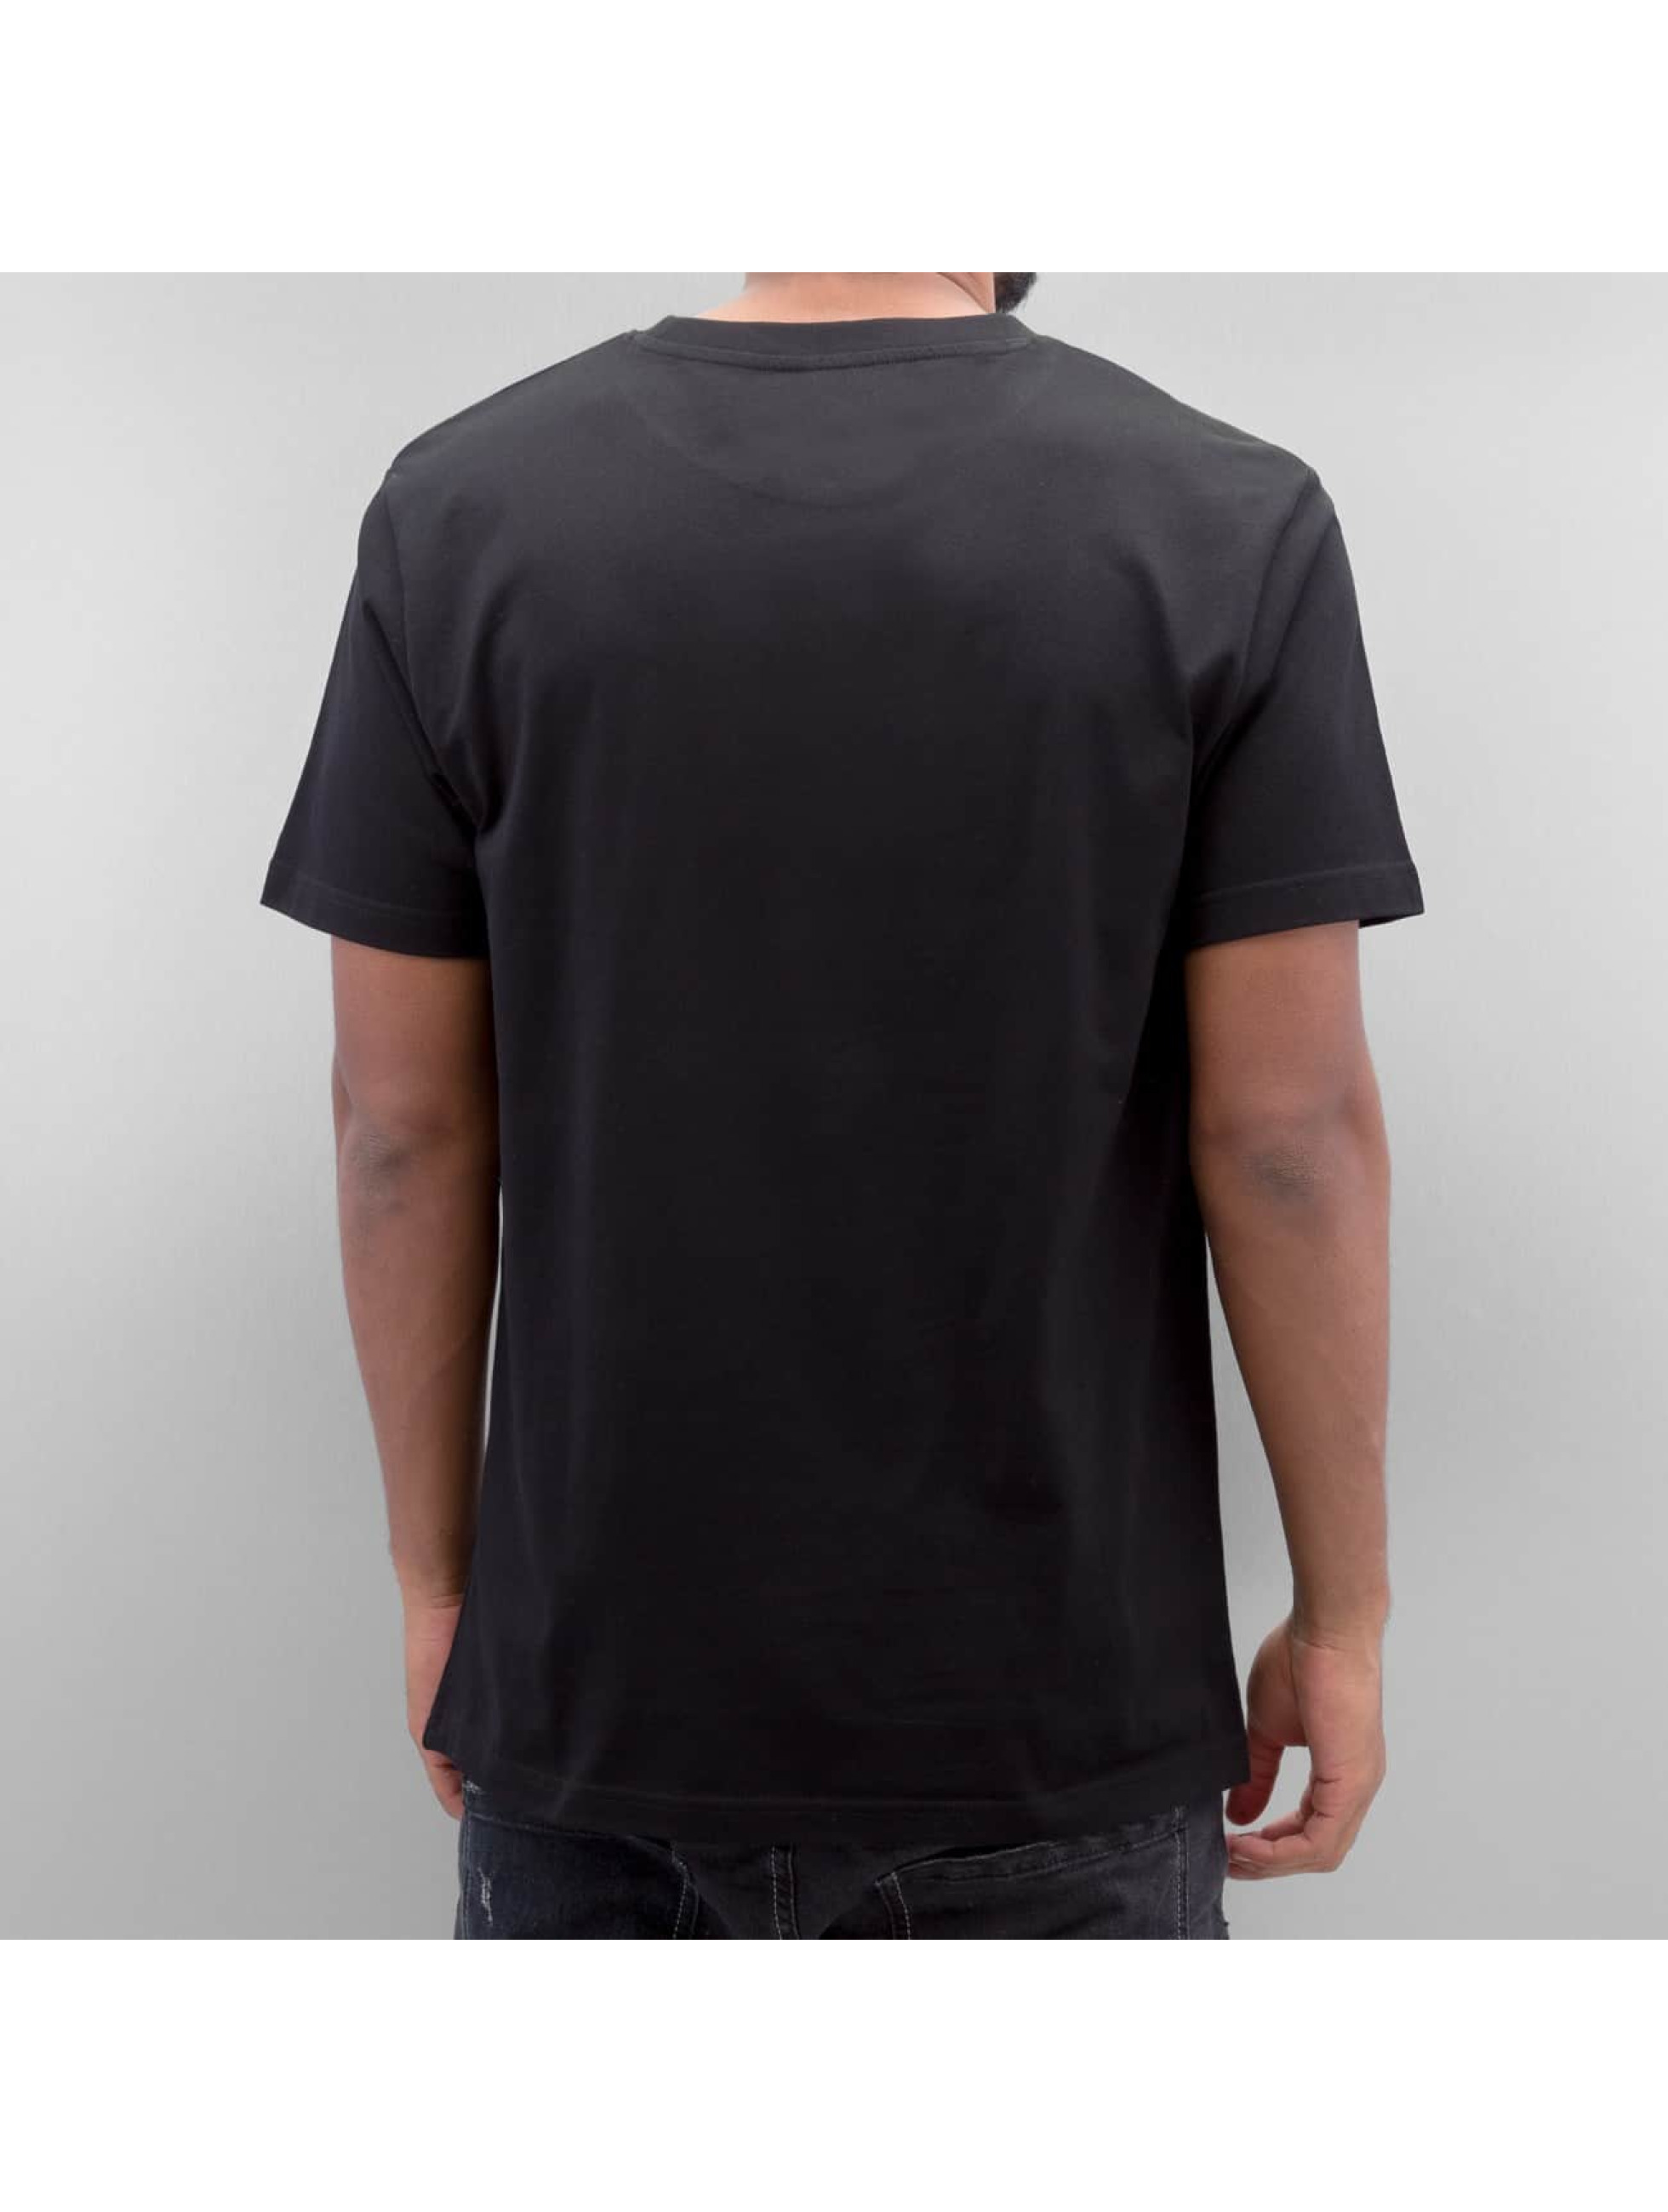 Mister Tee T-shirt Powder nero